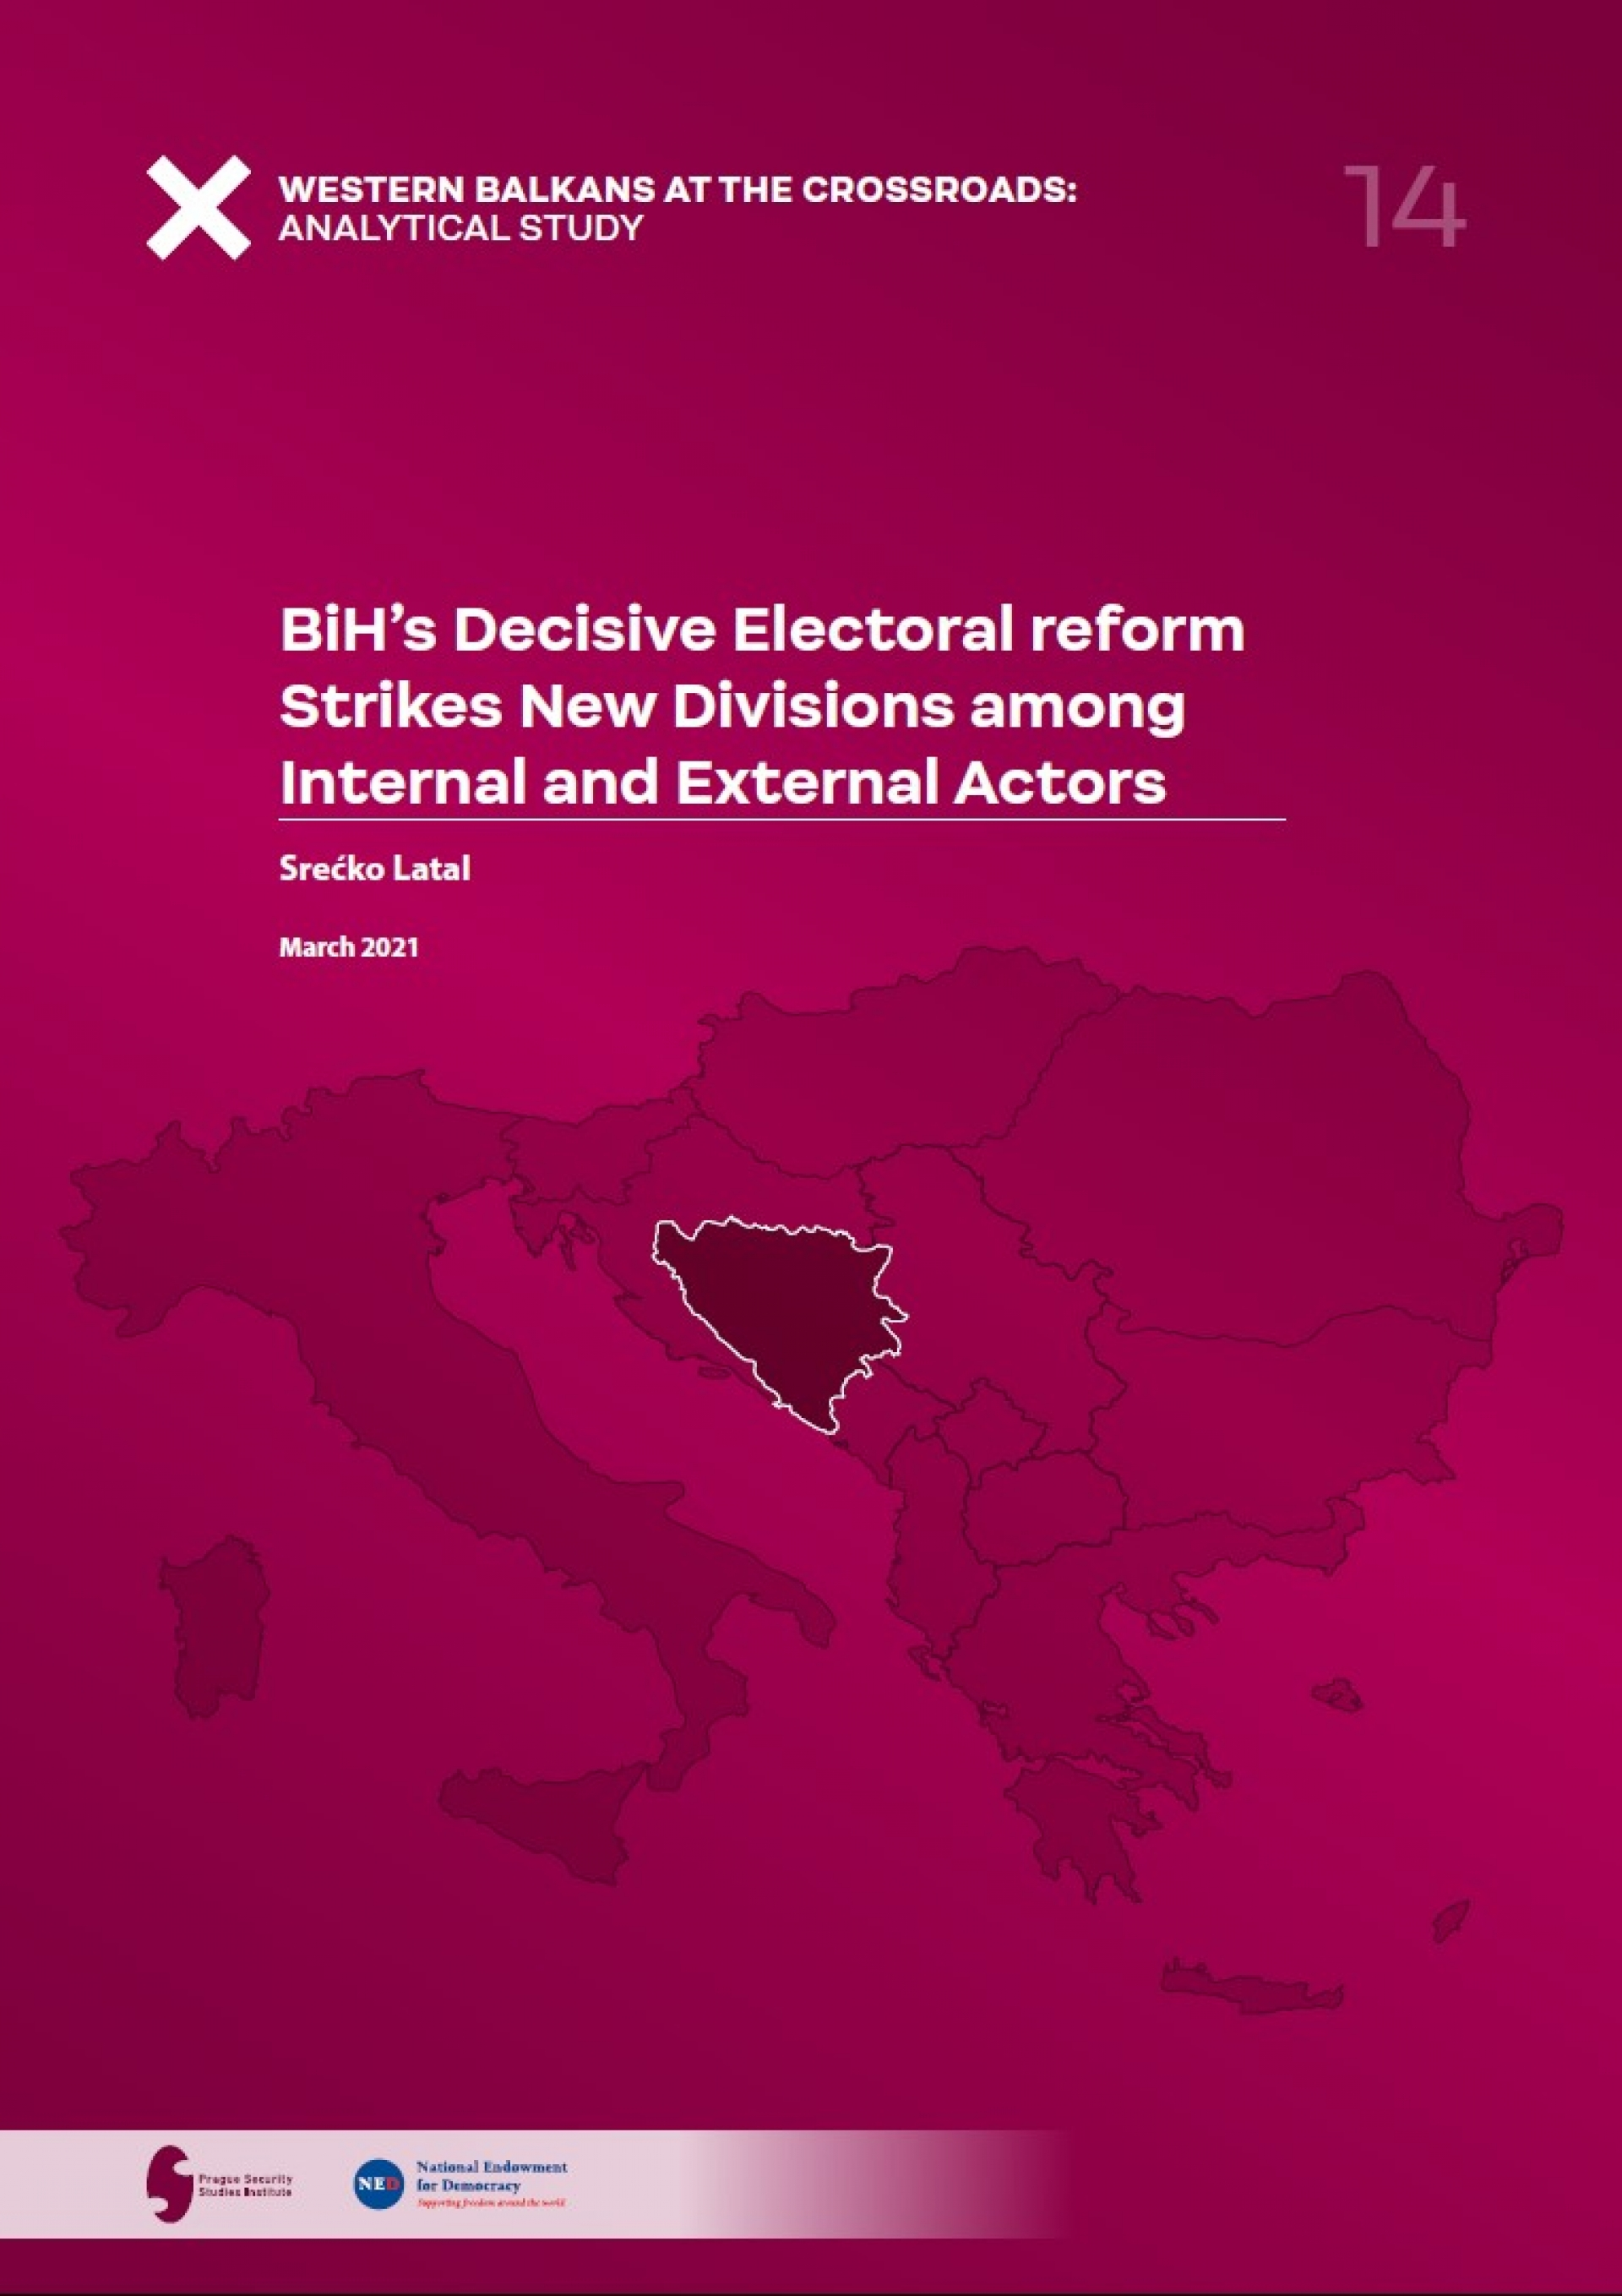 BiH's Decisive Electoral reform Strikes New Divisions among Internal and External Actors Coverpage